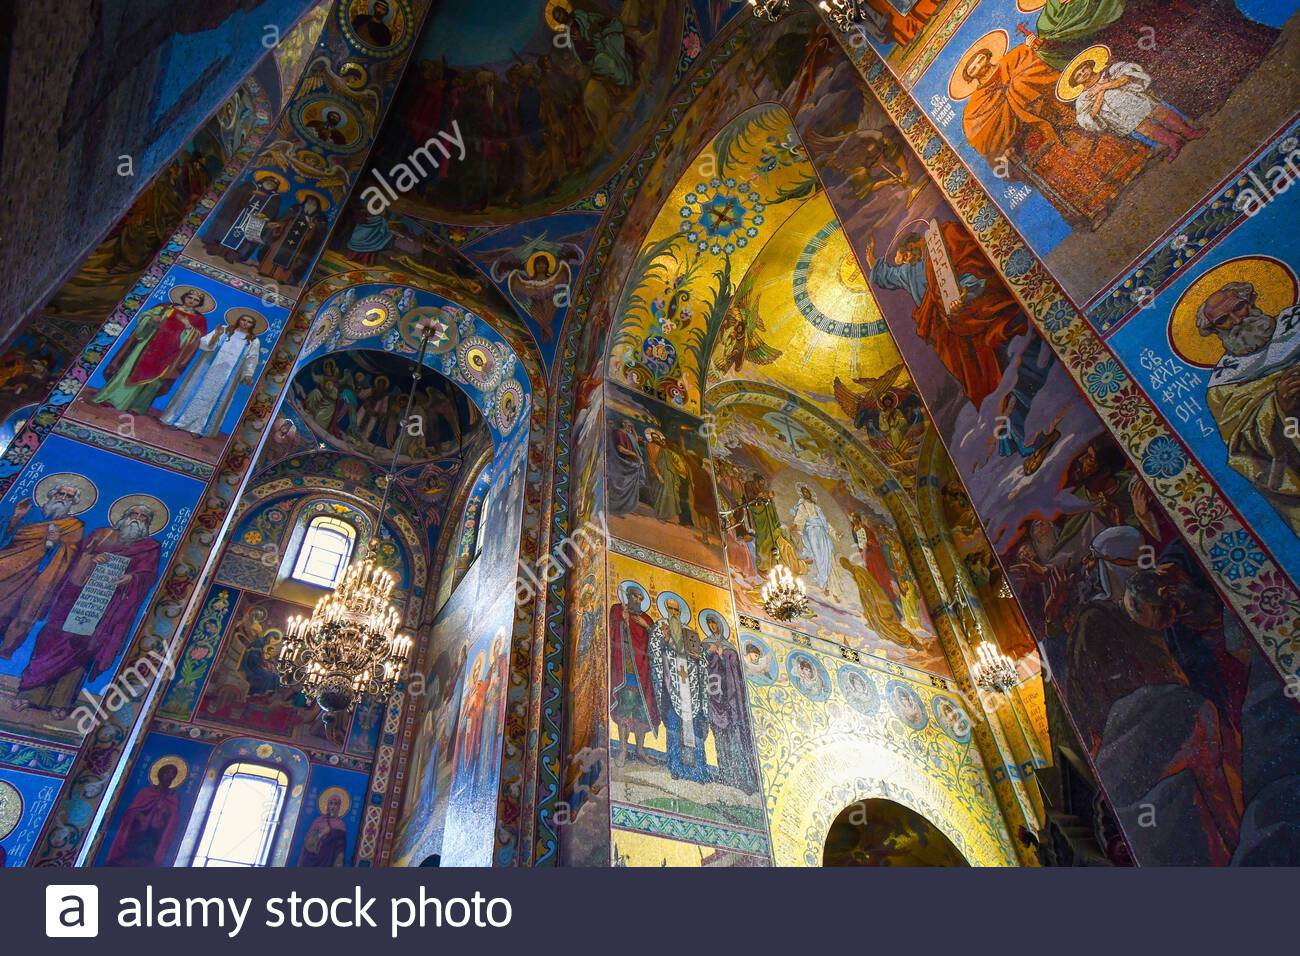 Inside the Church of the Savior on Spilled Blood (Cathedral of Resurrection of Christ) depicting religious scenes in mosaics on the walls and ceiling Stock Photo